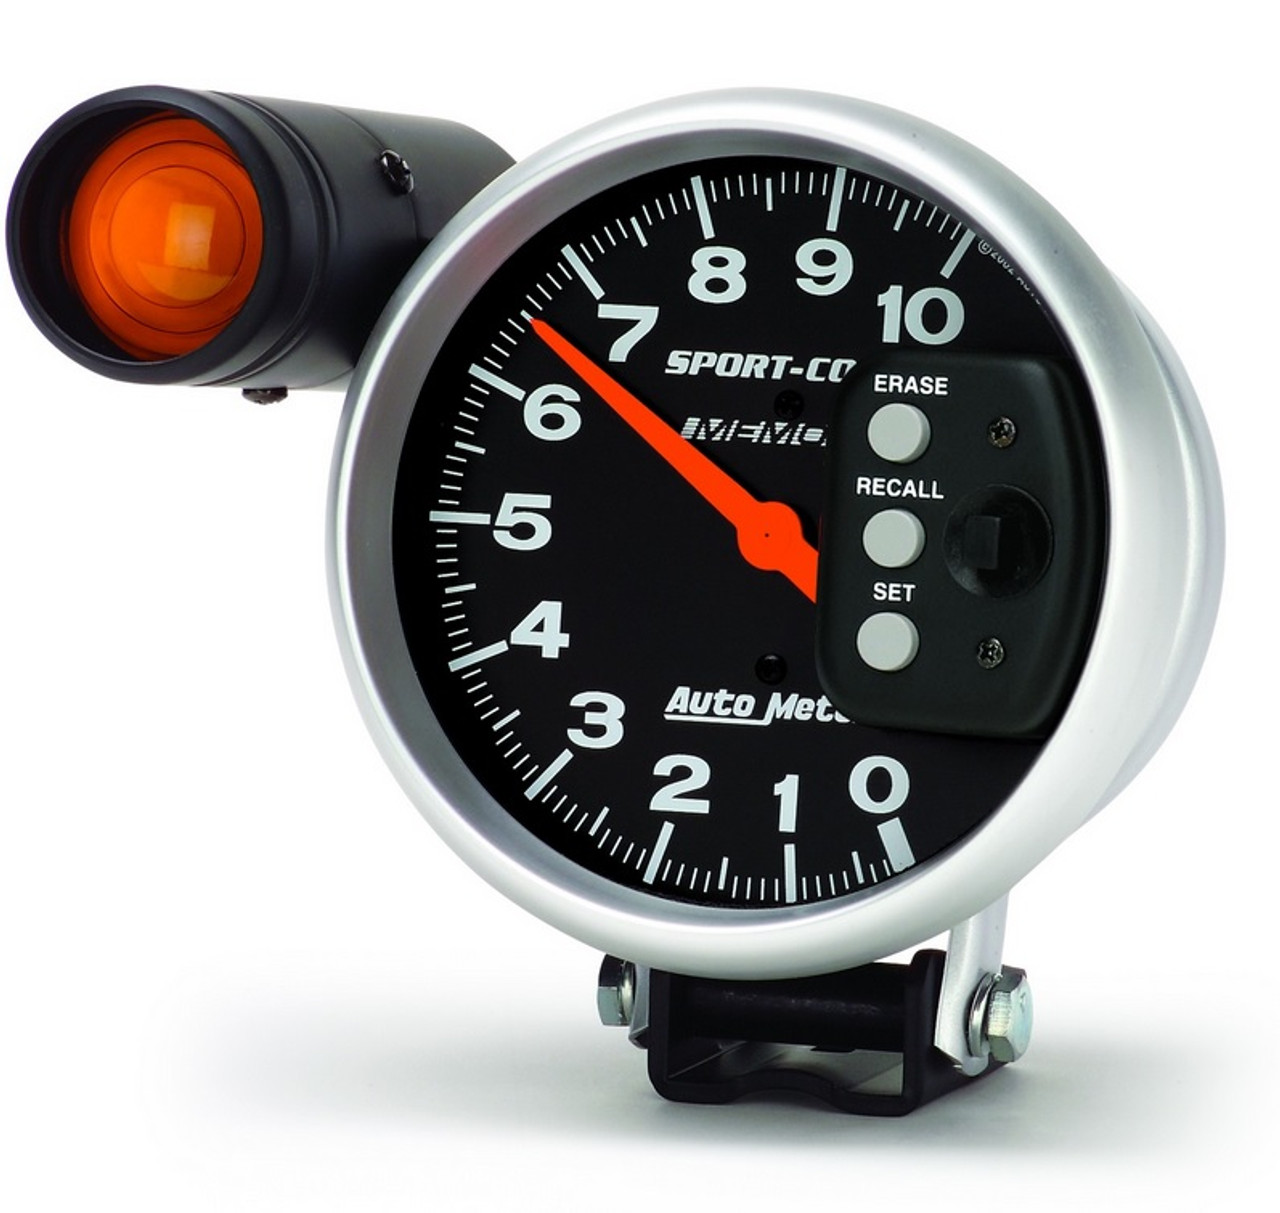 hight resolution of 3900 auto meter sport comp tach wiring diagram wiring diagram home 3900 auto meter sport comp tach wiring diagram